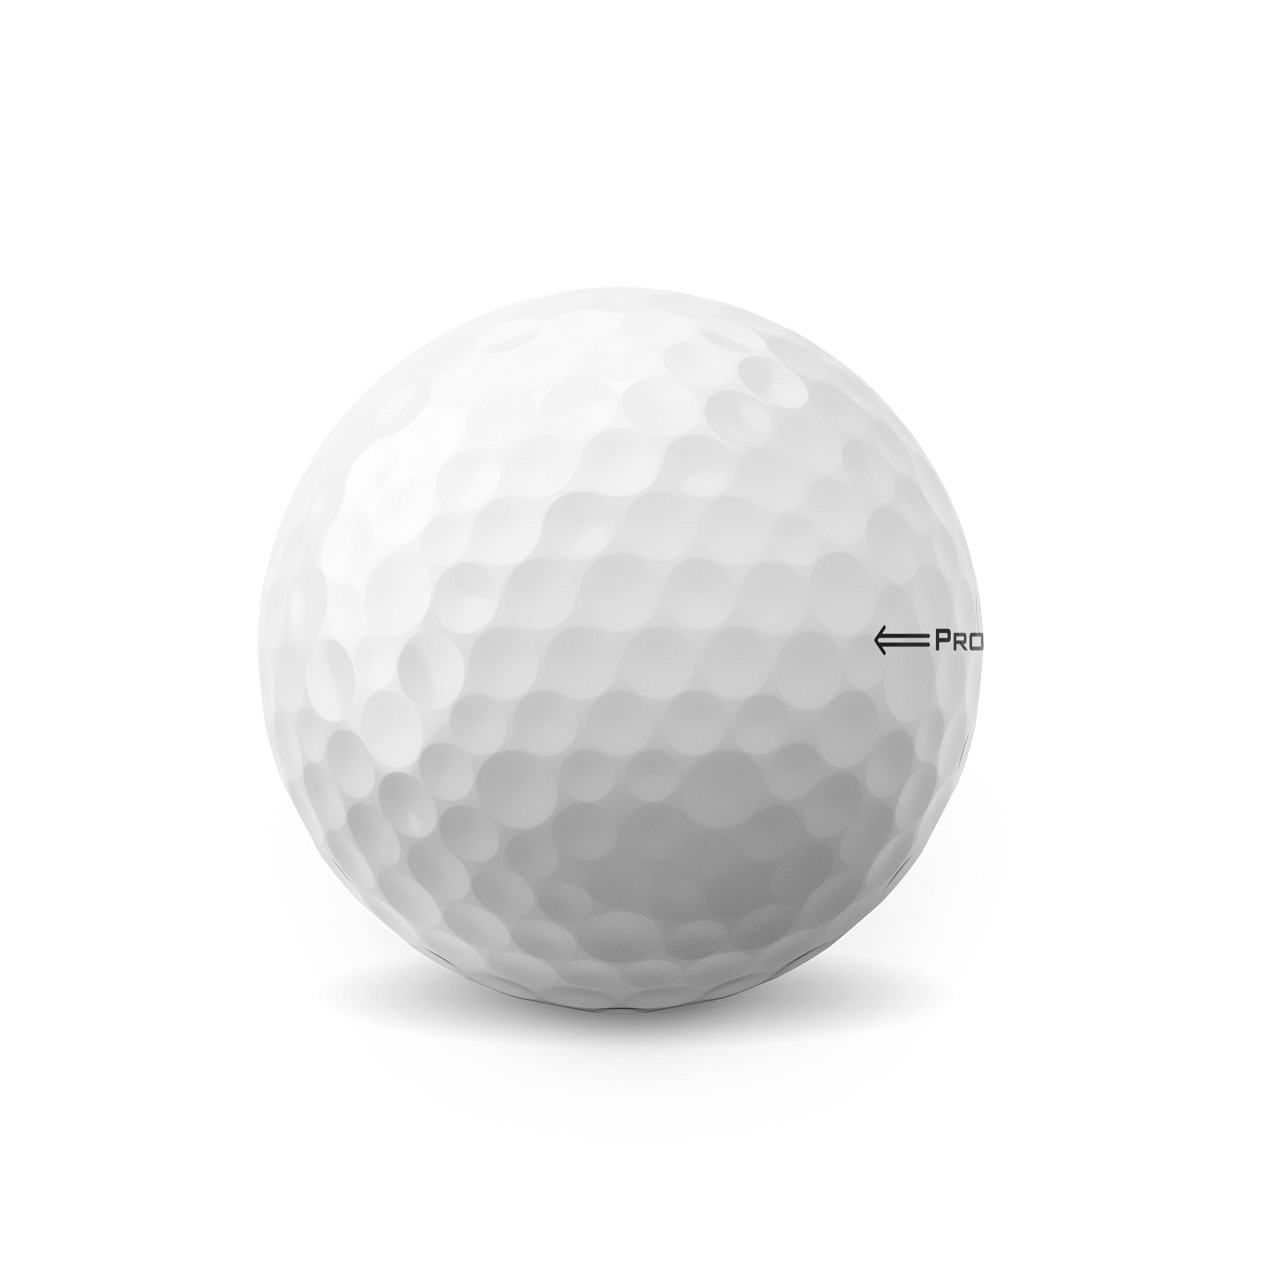 Titleist Personalized Pro V1x Dozen Golf Balls 2021 - Low Numbers (#1 - #4)